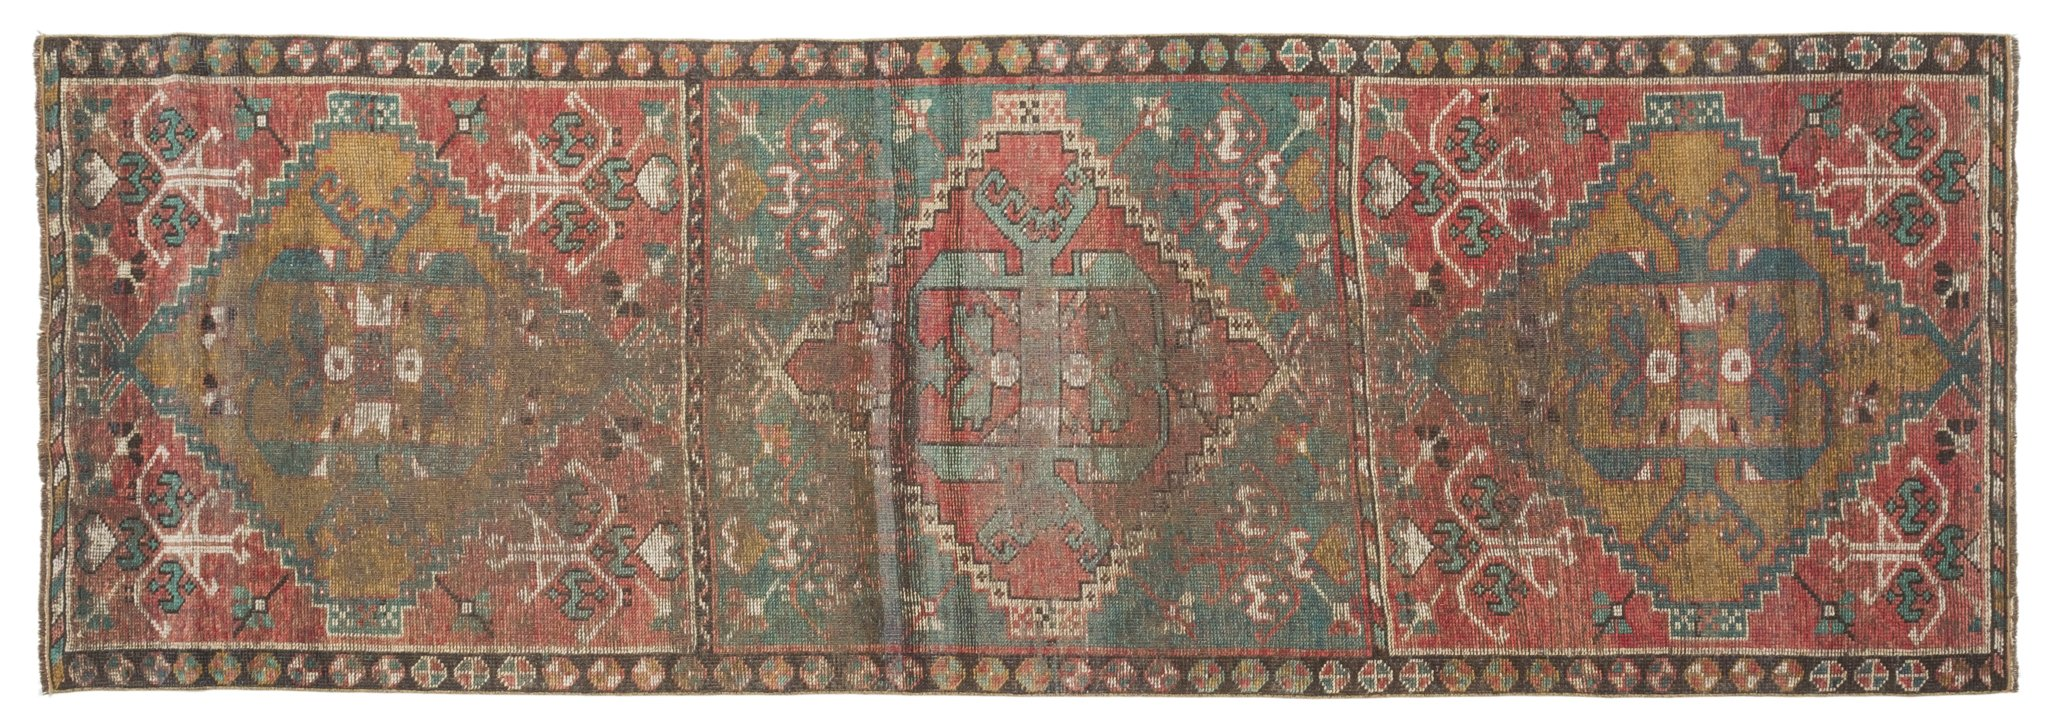 Vintage Turkish Runner Rug Ambros